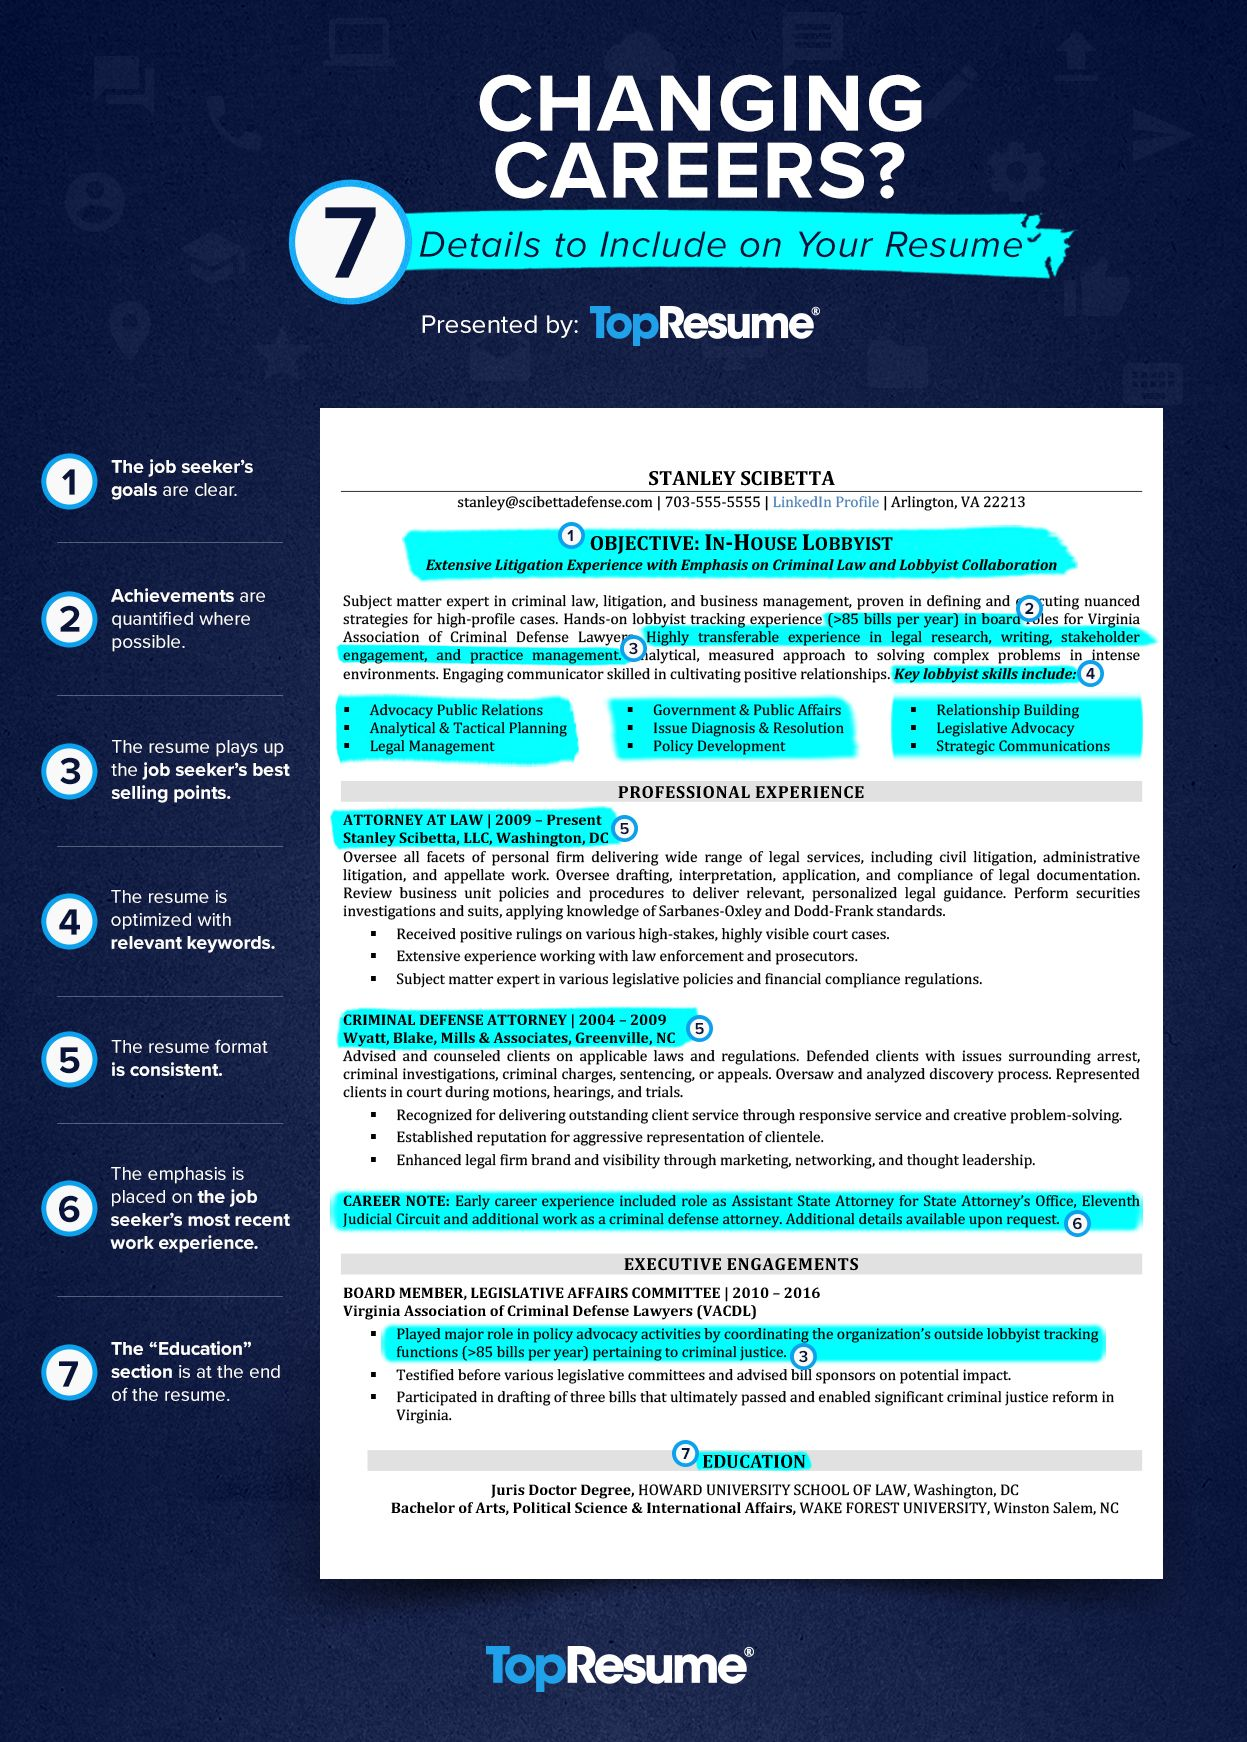 Changing Careers 7 Details To Include On Your Resume Career Change Resume Career Change Teacher Career